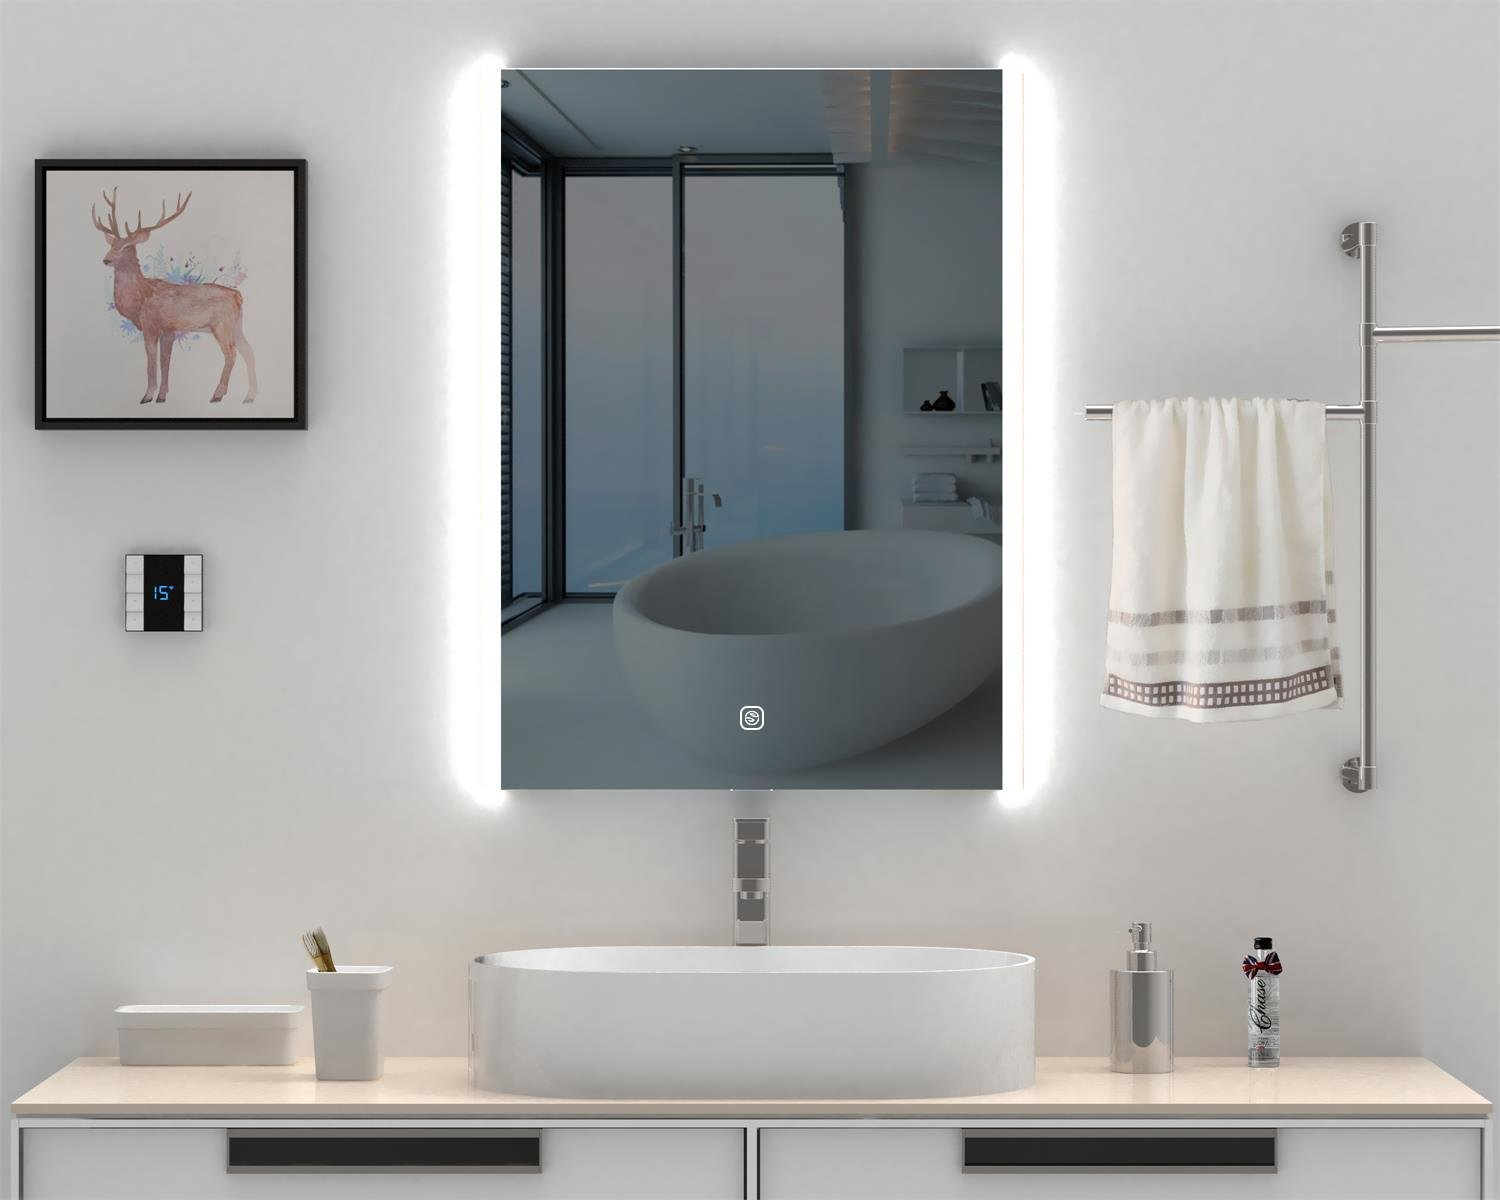 Lighted Vanity Mirror.Heynemo 32 X24 Bathroom Led Lighted Vanity Mirror Wall Mounted Makeup Mirror Led Lights Vanity Dimmer Touch Switch Waterproof Illuminated Mirror For